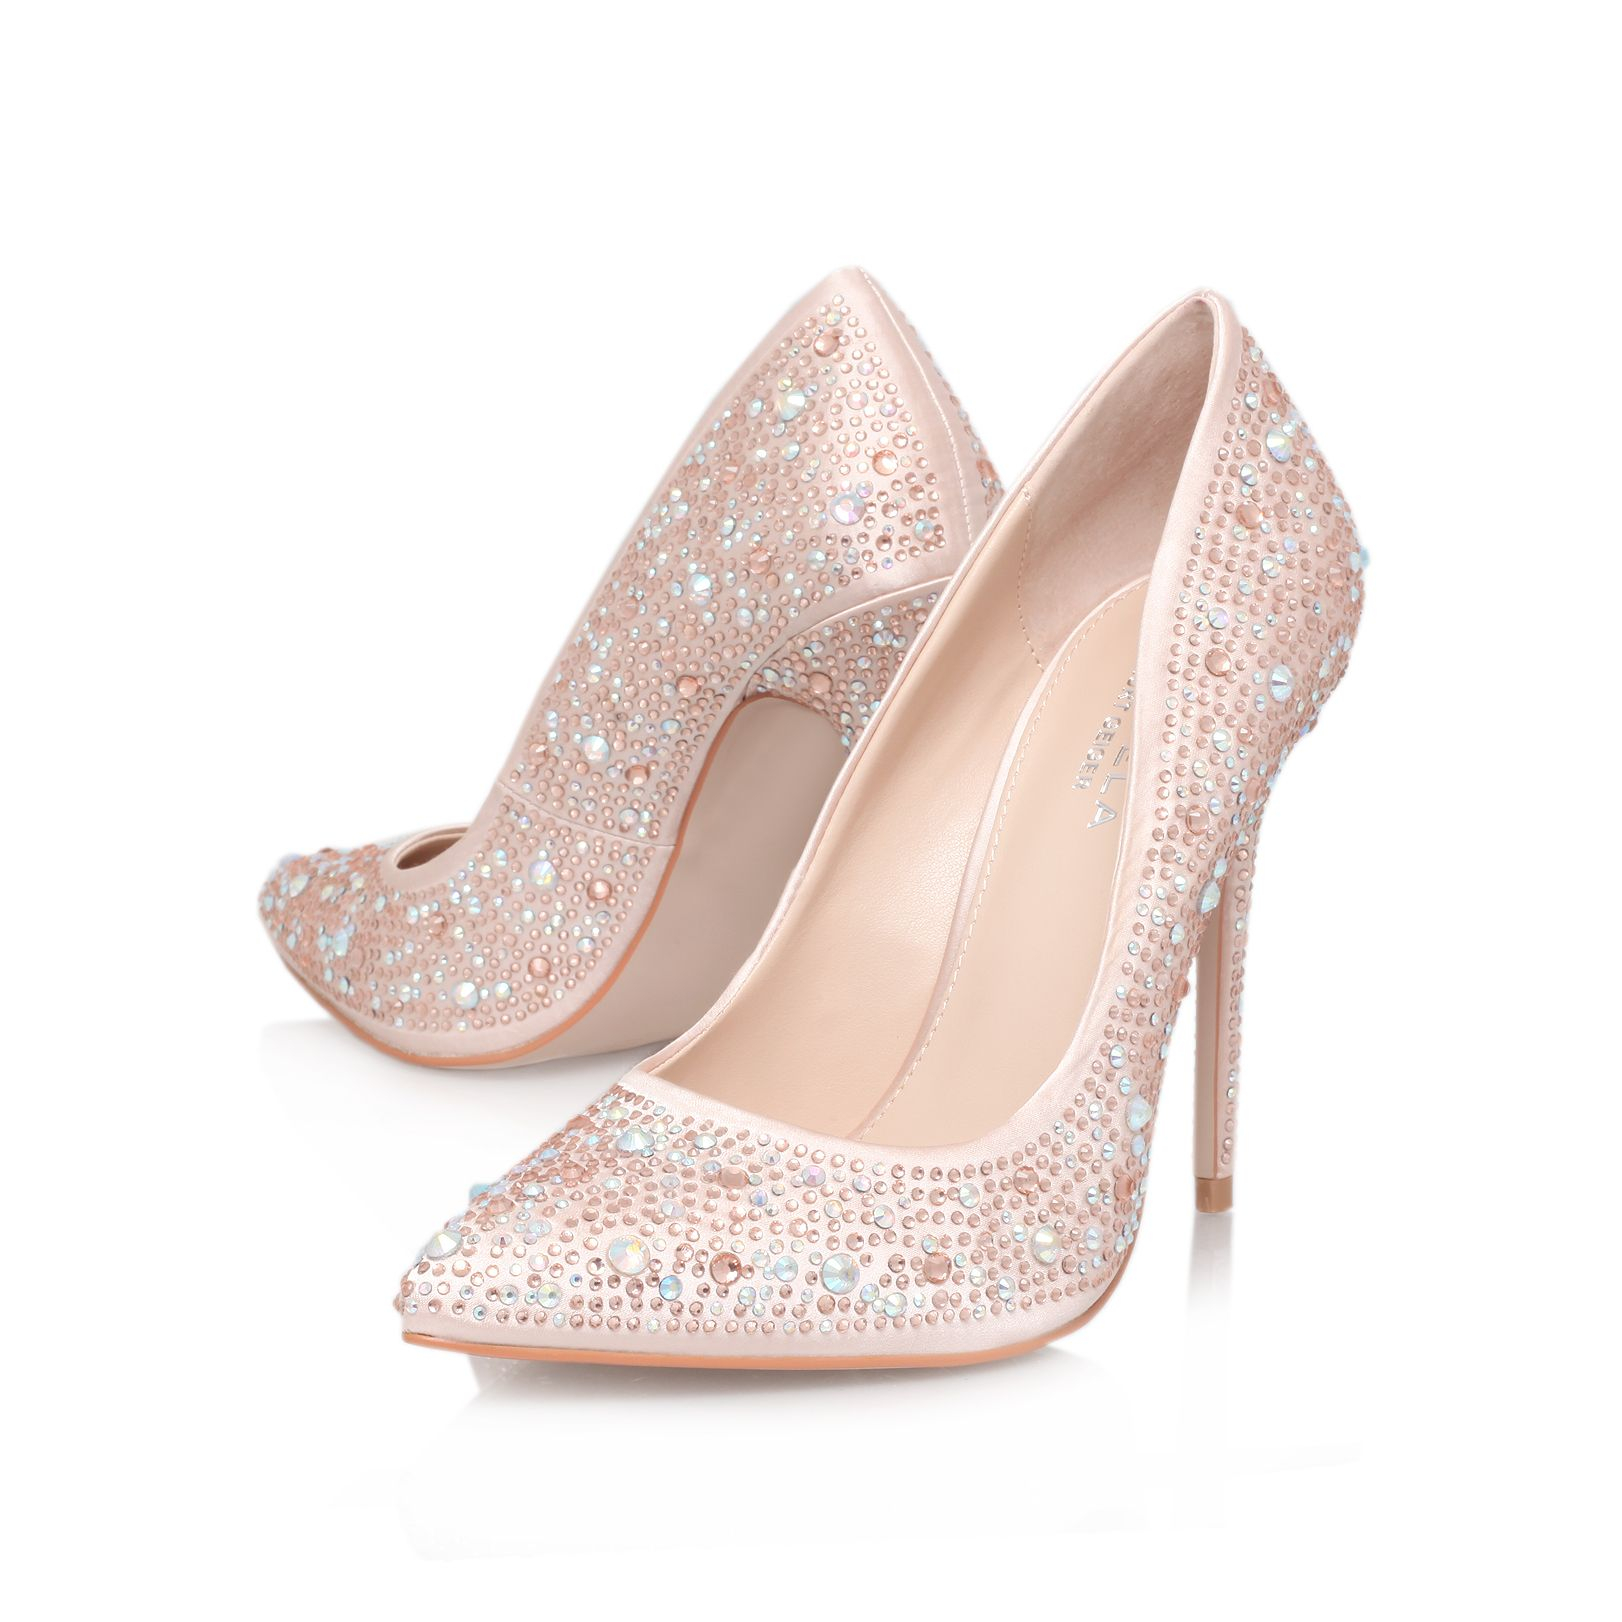 Carvela Wedding Shoes Uk